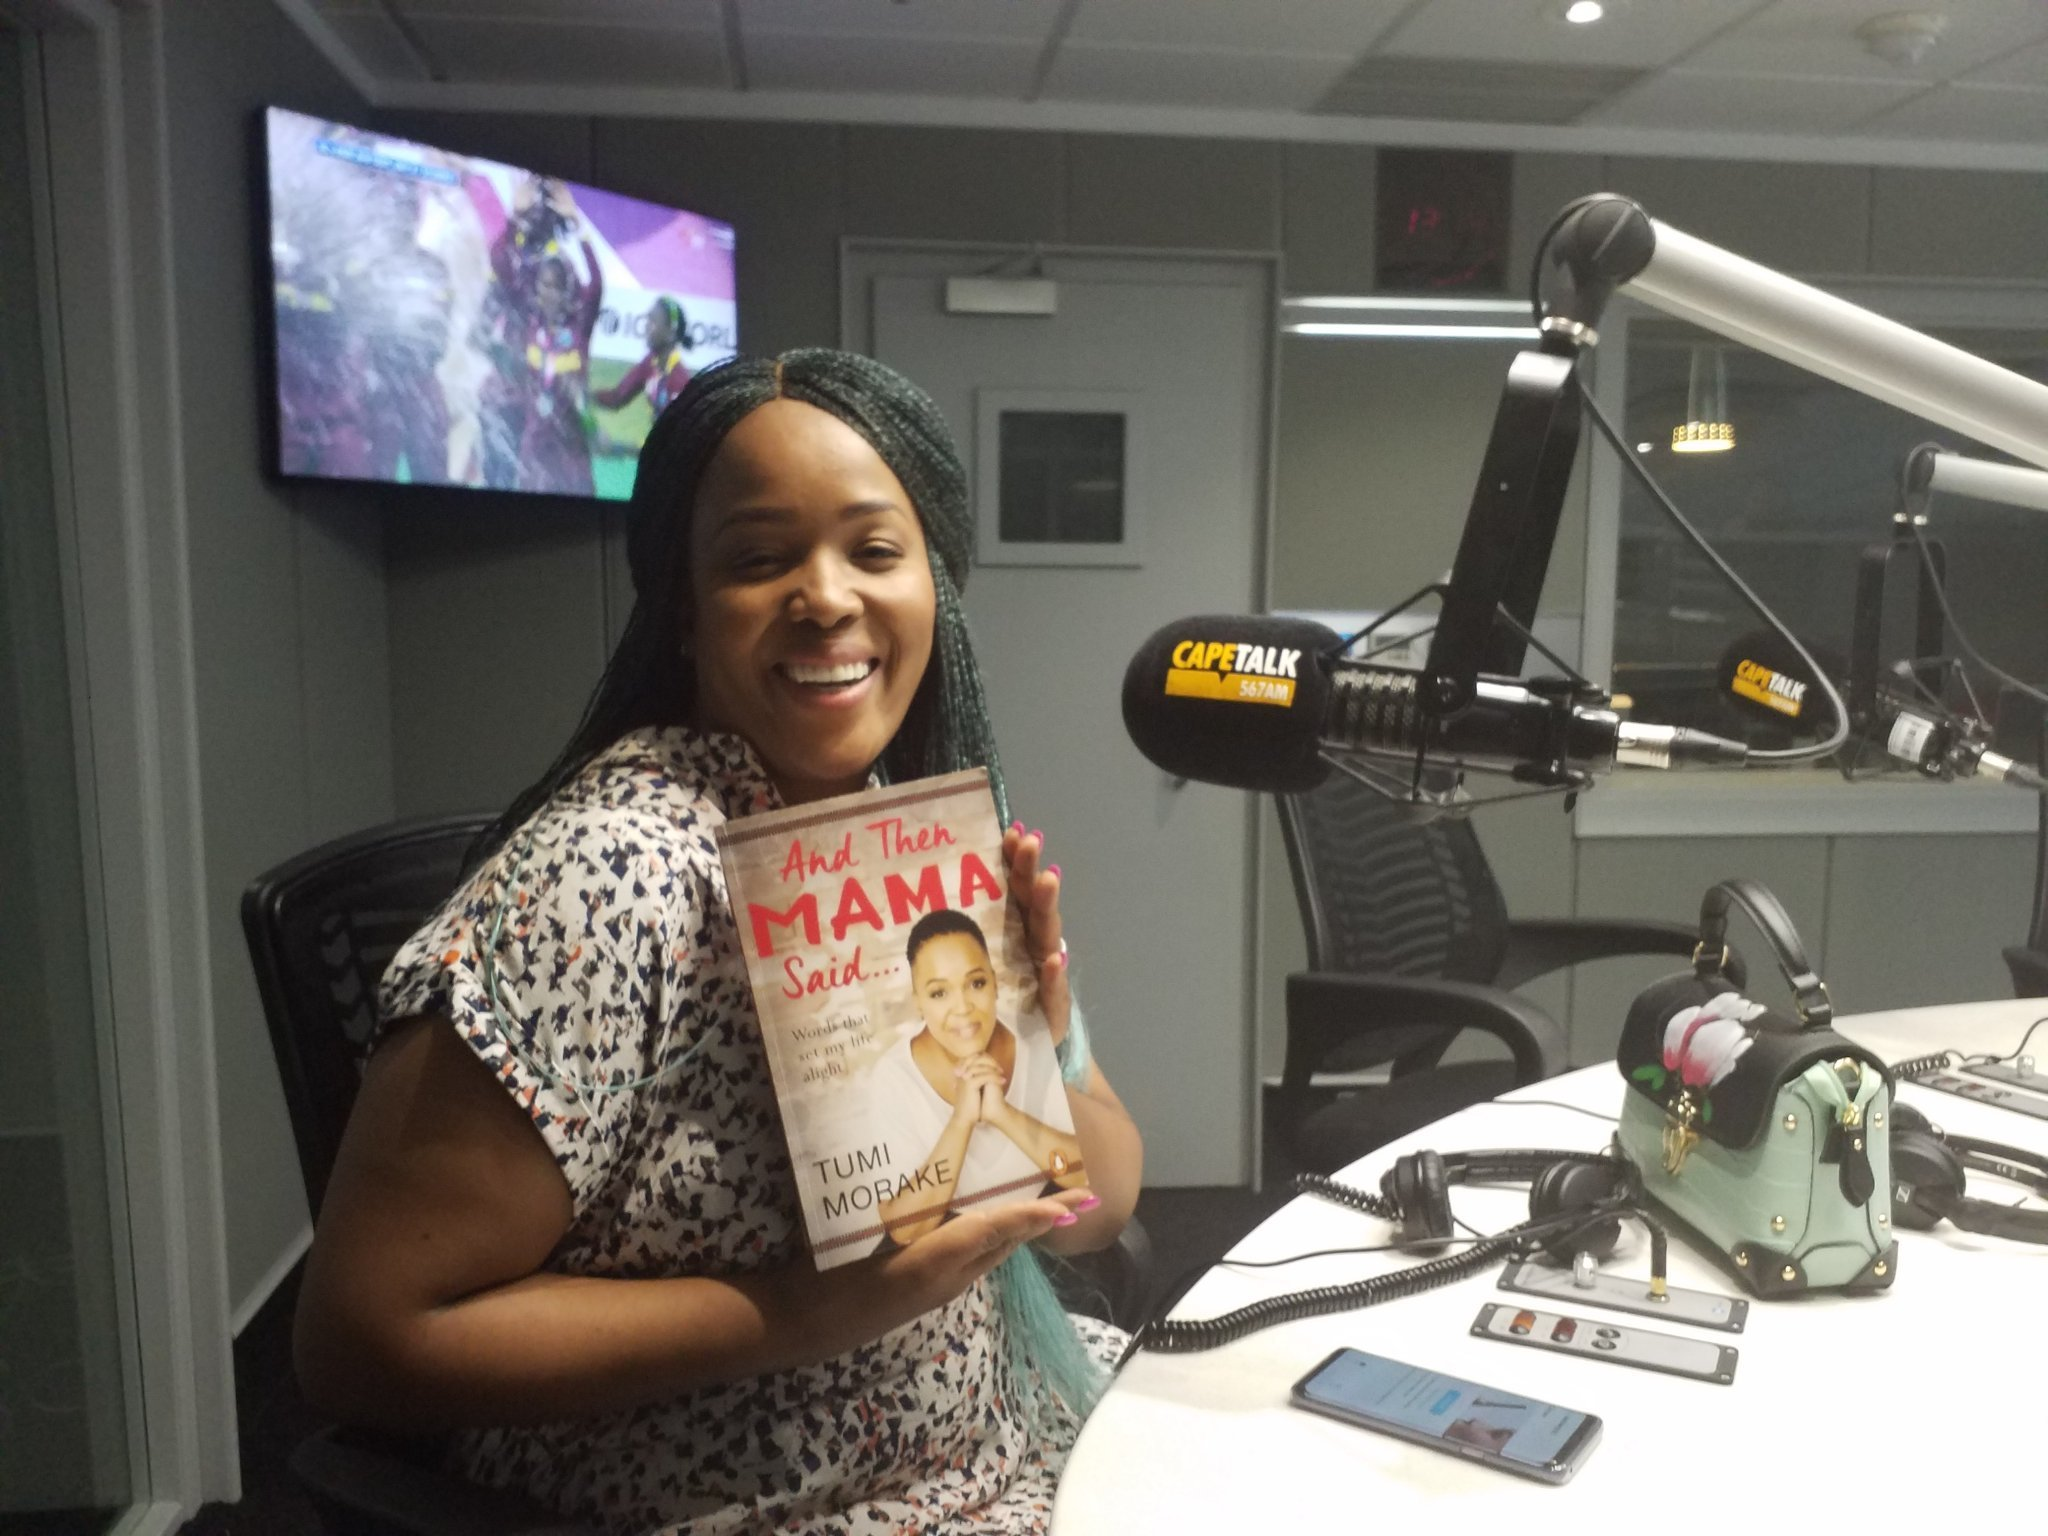 First lady of comedy Tumi Morake on her book, career, life & much more